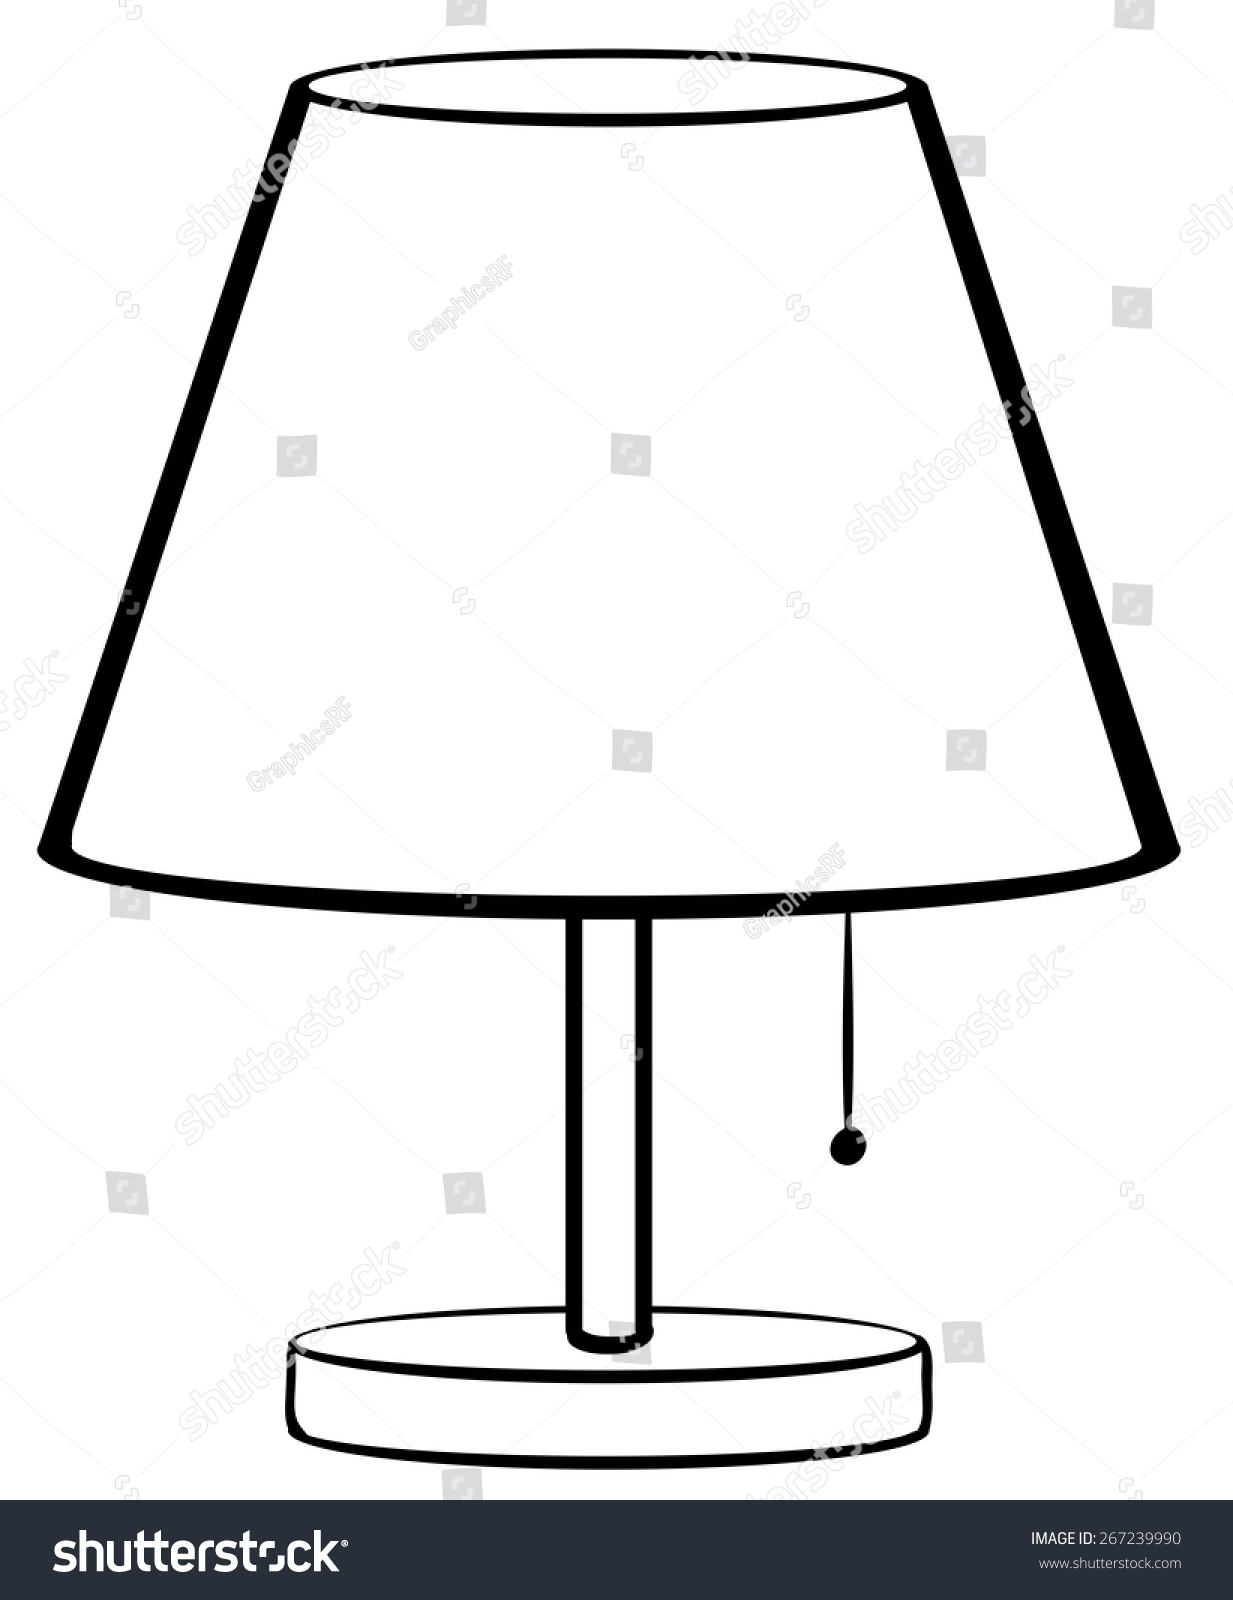 lamp clipart black and white - photo #26